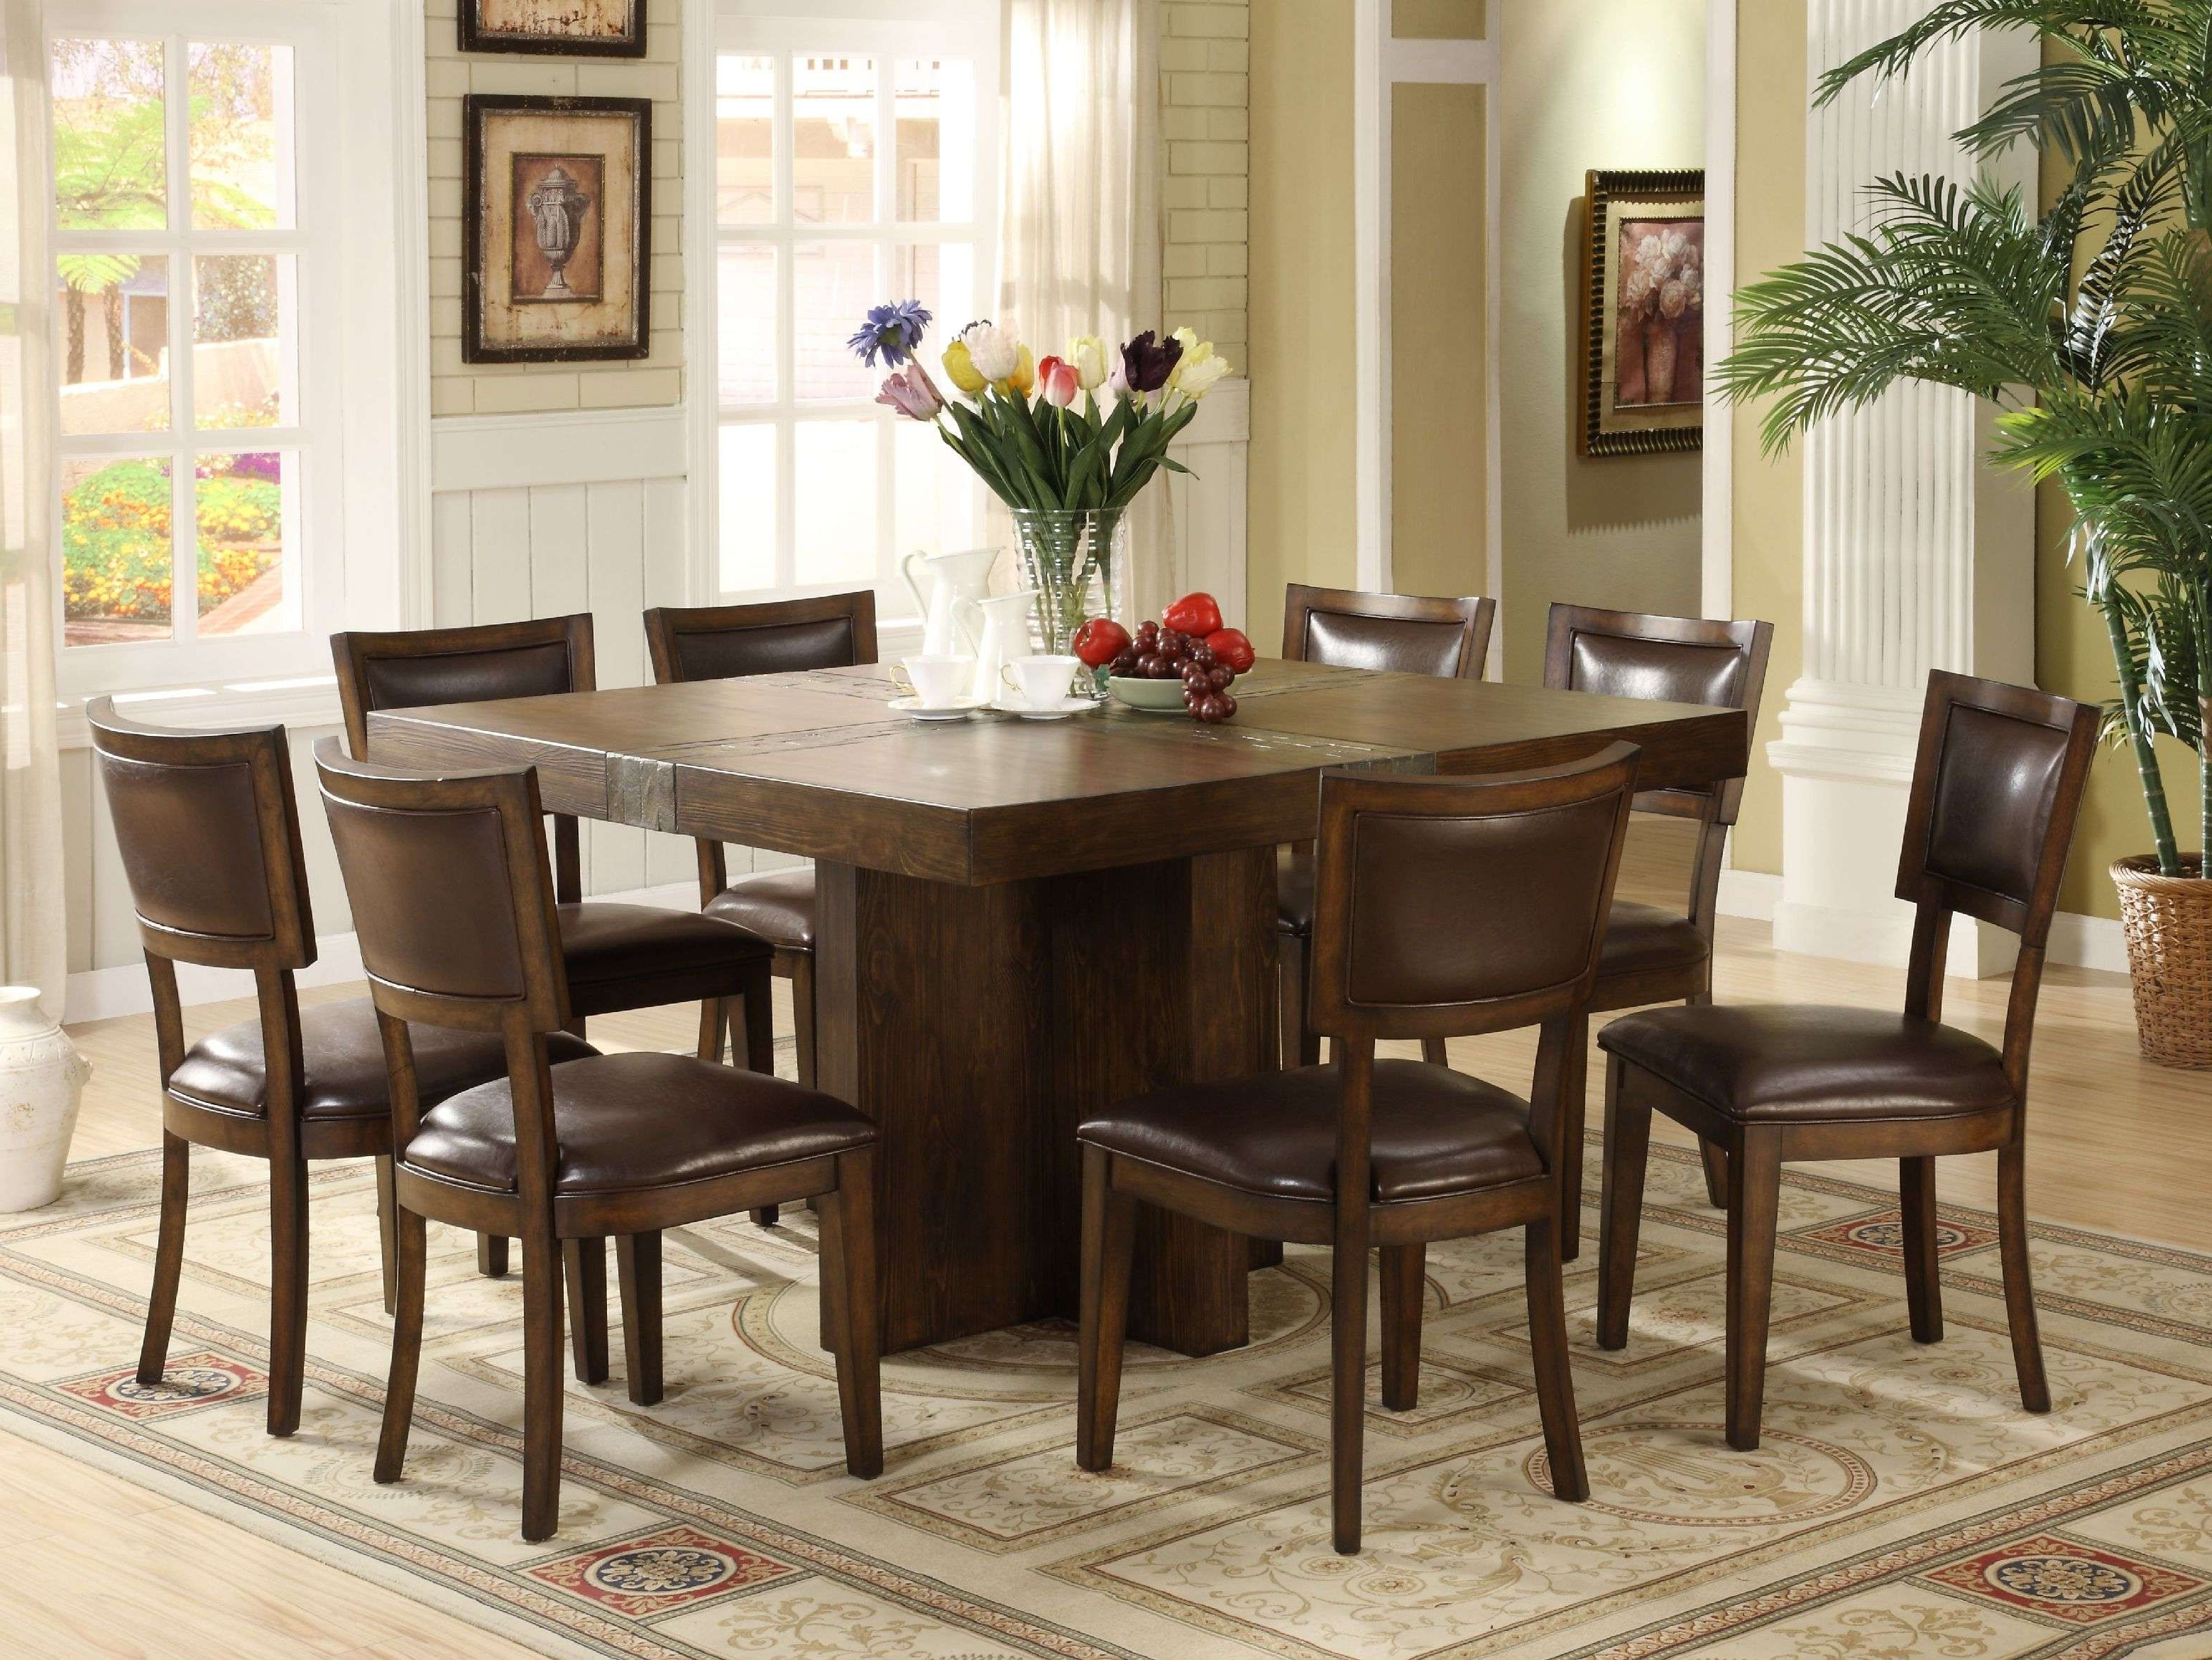 Dining Tables 8 Chairs Set With Fashionable Solid Oak Dining Room Table And 8 Chairs Unique Best 8 Seater Dining (Gallery 7 of 25)